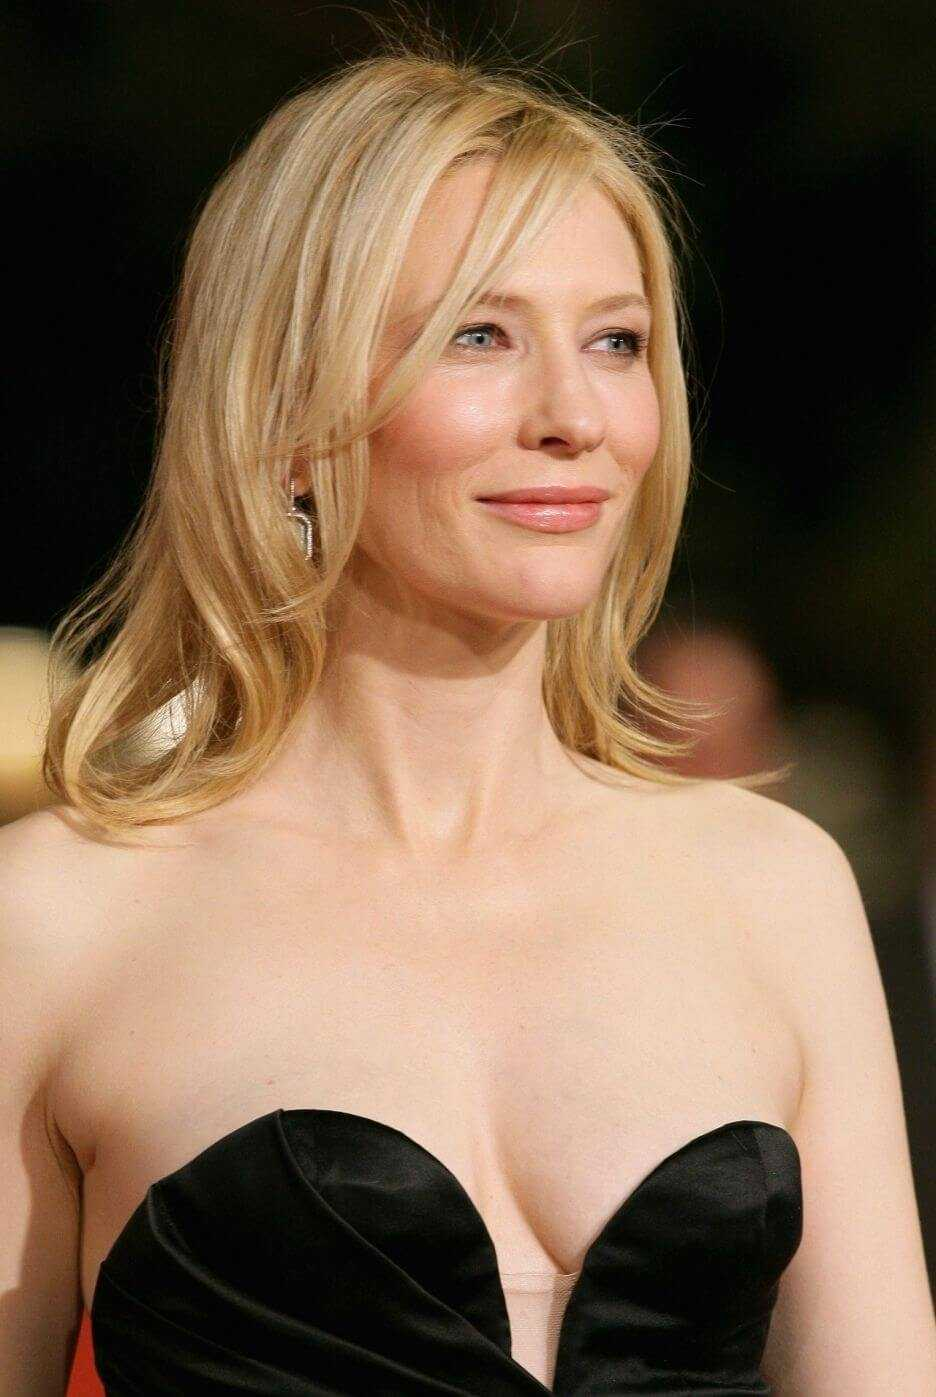 Cate Blanchett boobs pictures